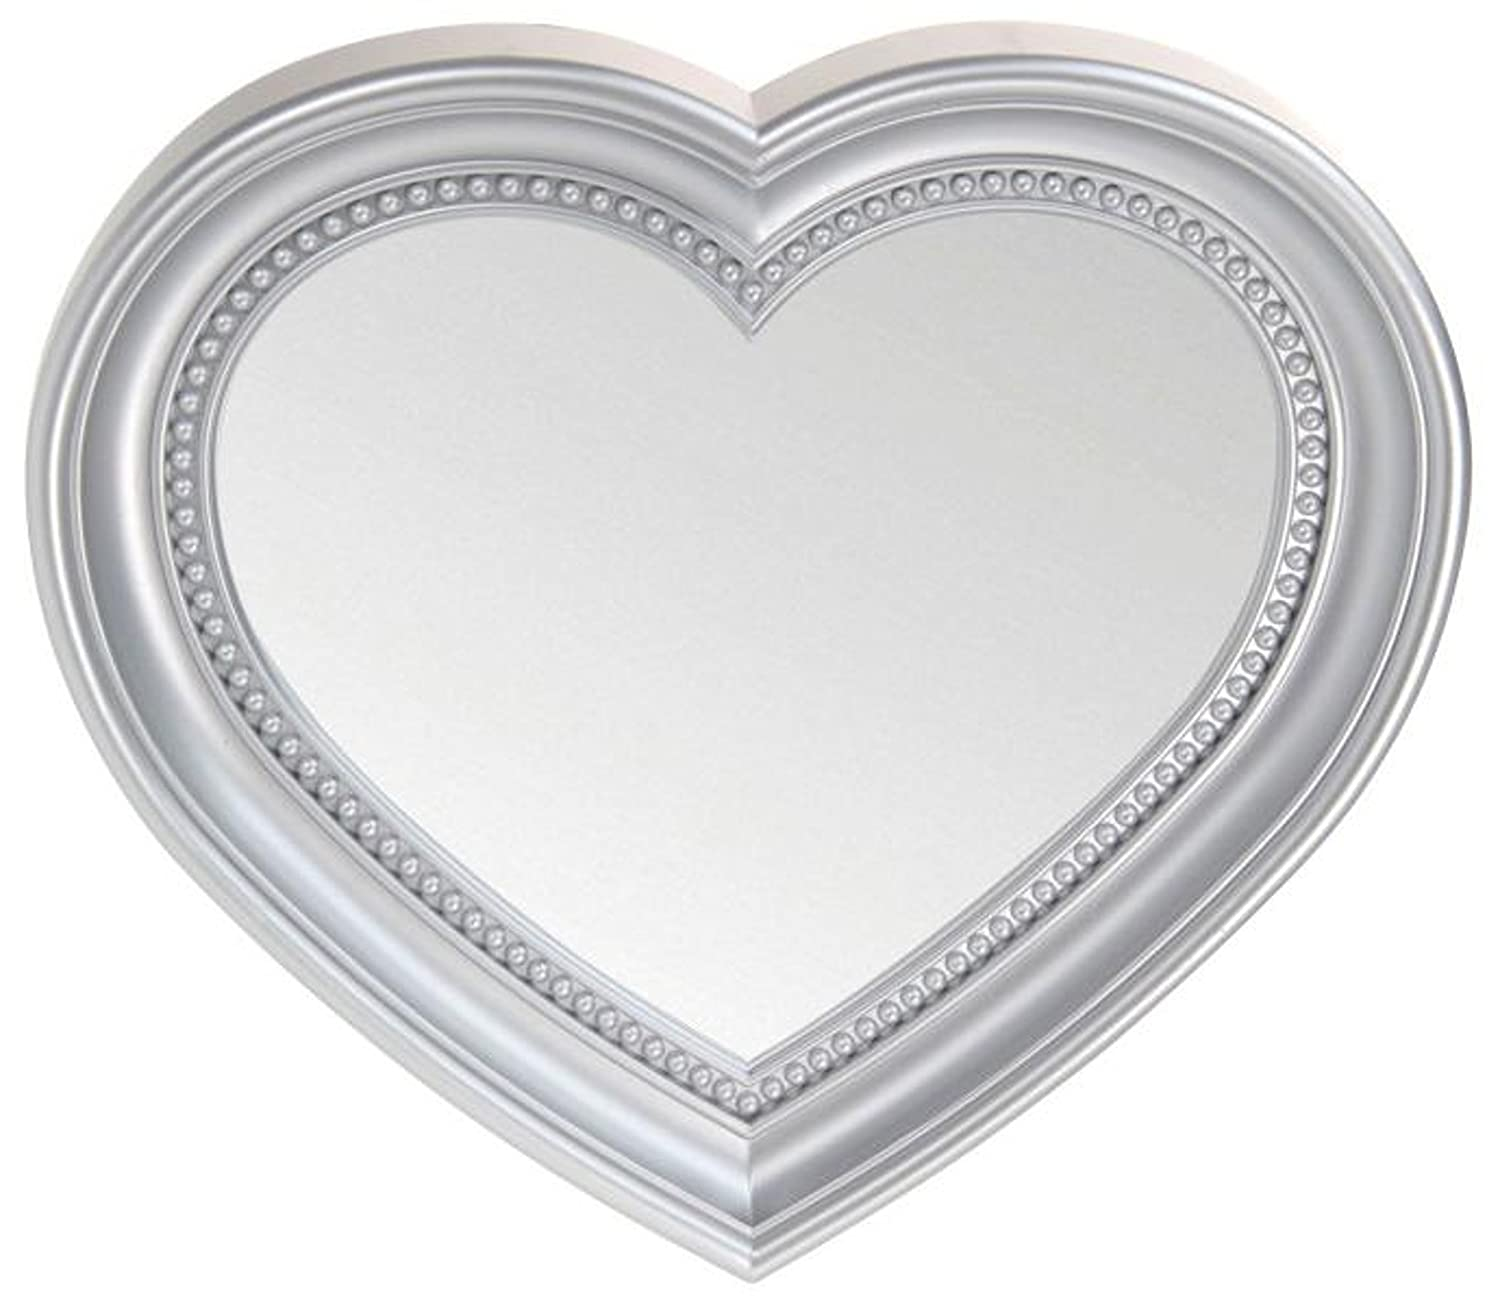 Heart Shaped Wall Hanging Mirror, Silver 35cm West5Products